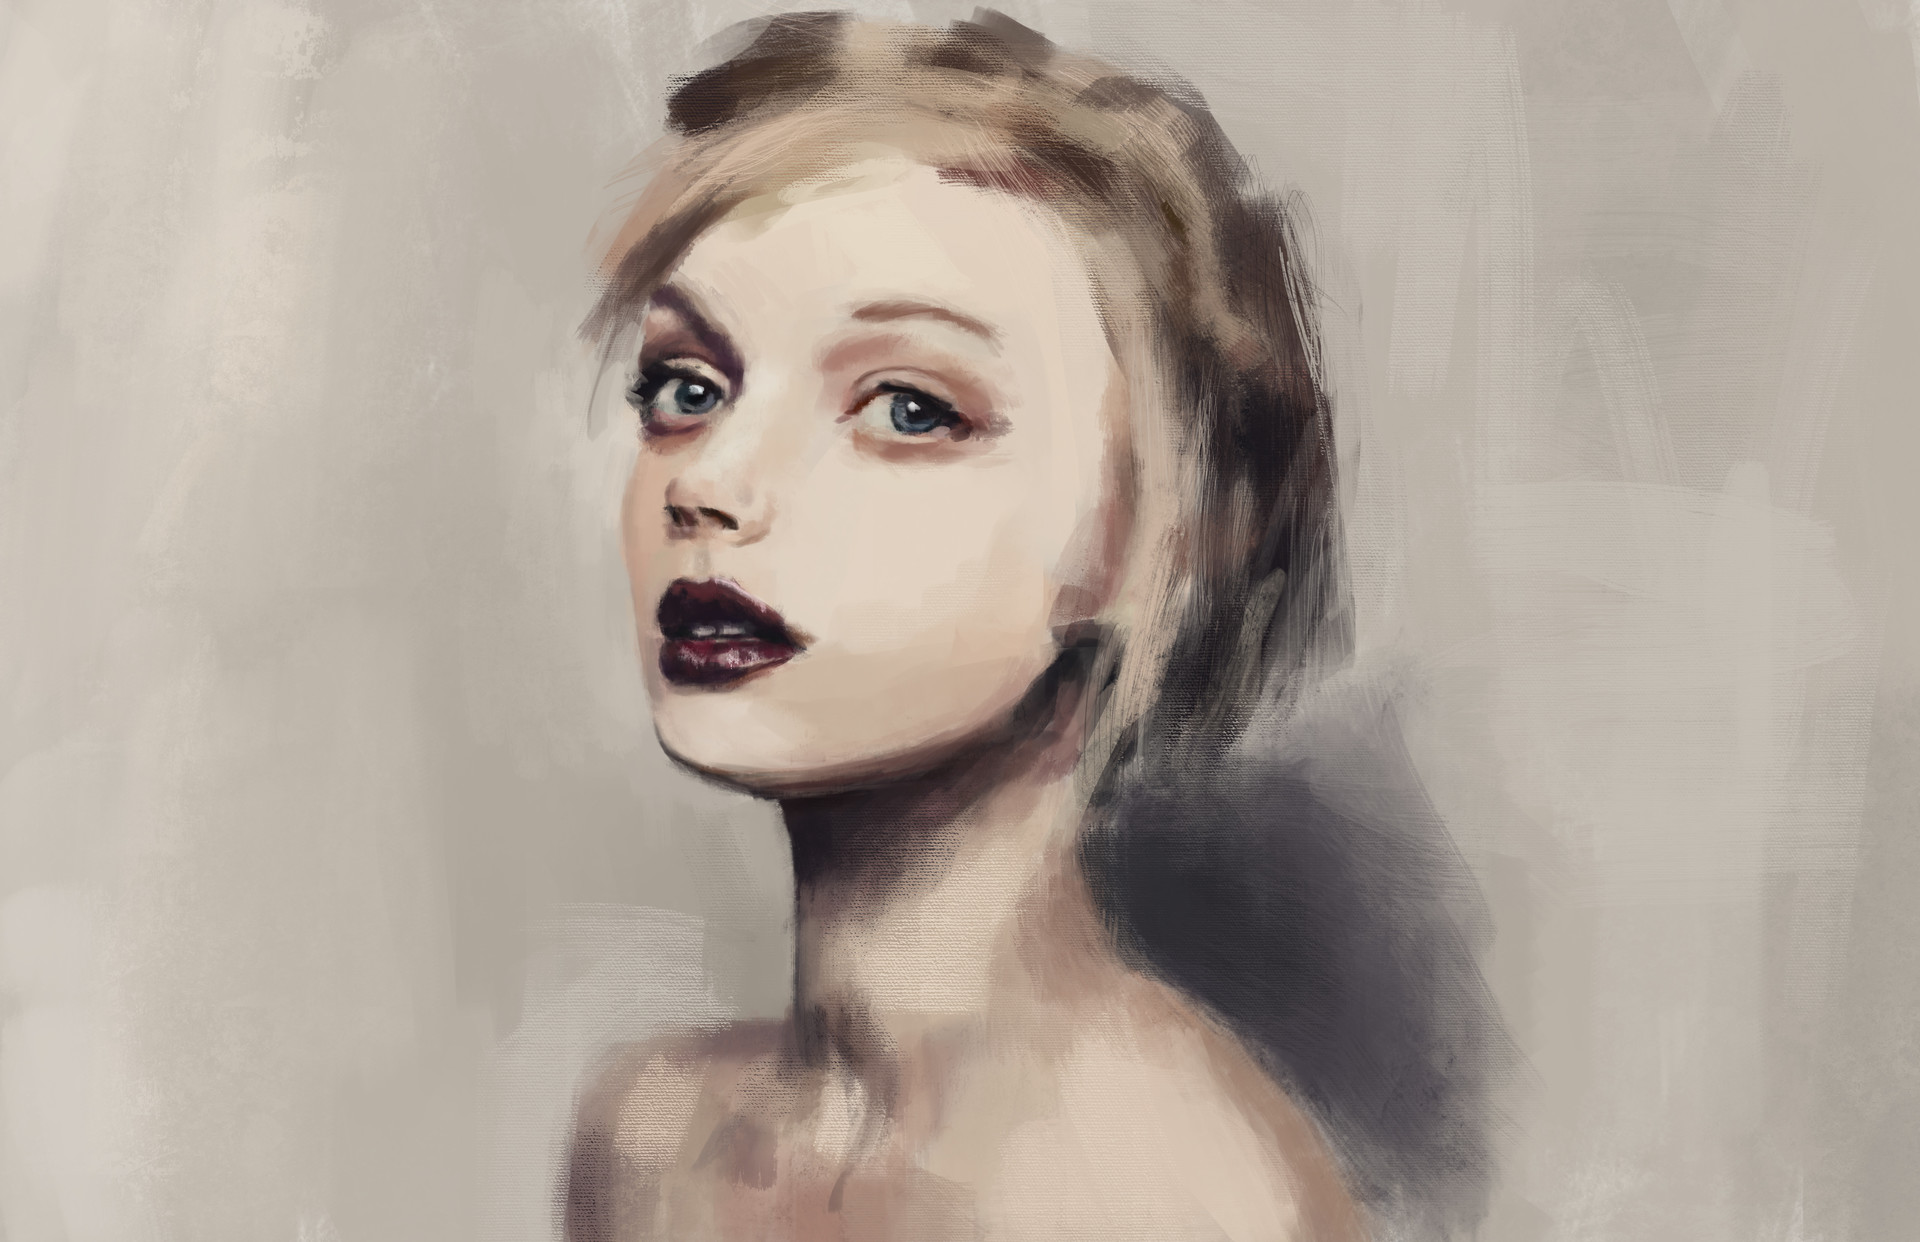 Sean Papile Short Blonde Hair Study